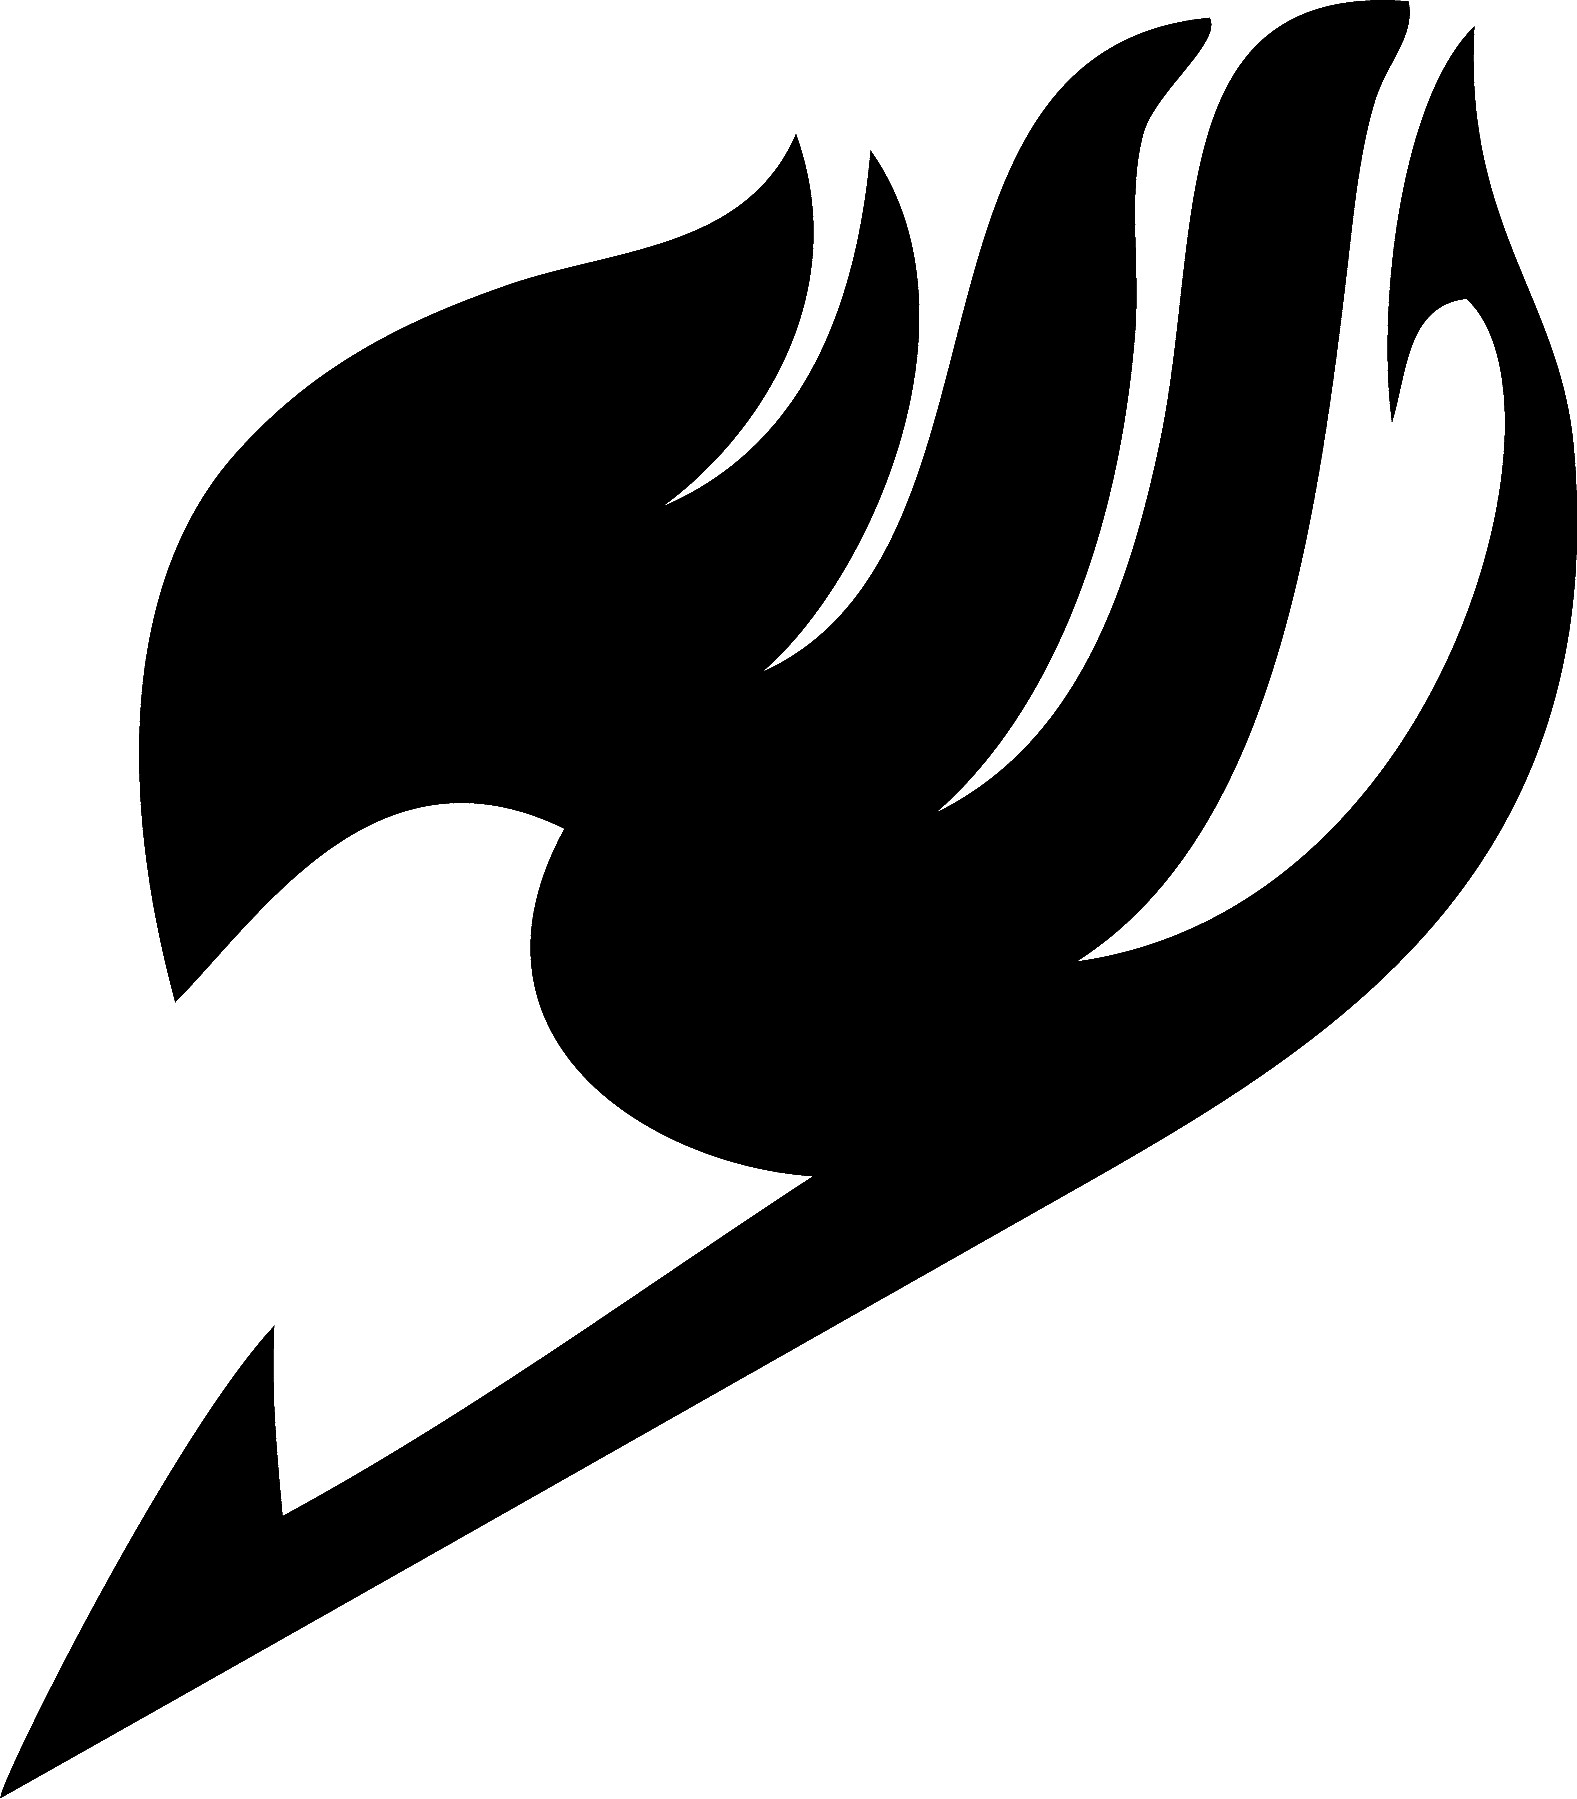 Filefairy tail logog wikimedia commons filefairy tail logog biocorpaavc Image collections